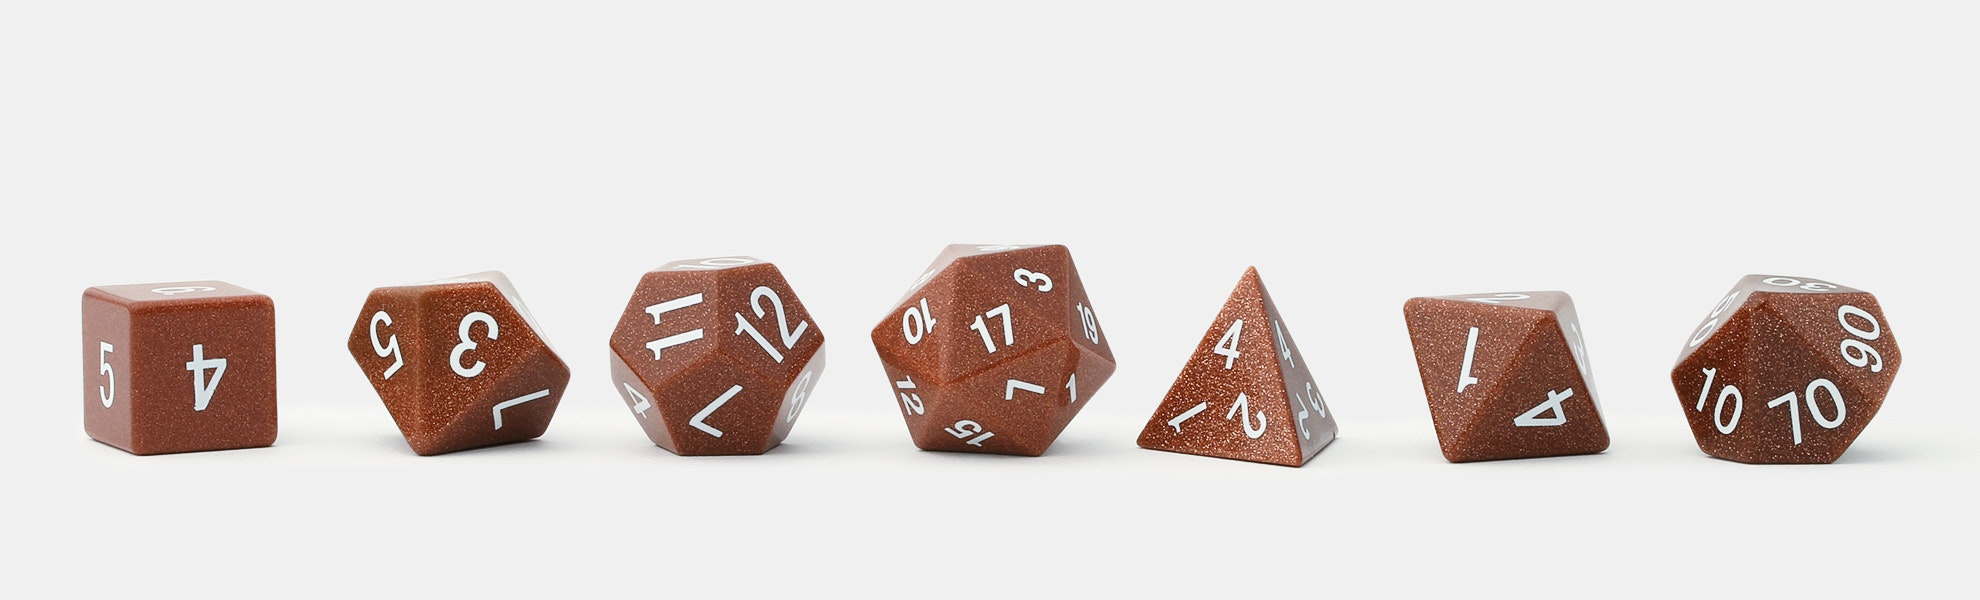 MDG Goldstone Polyhedral Dice Set